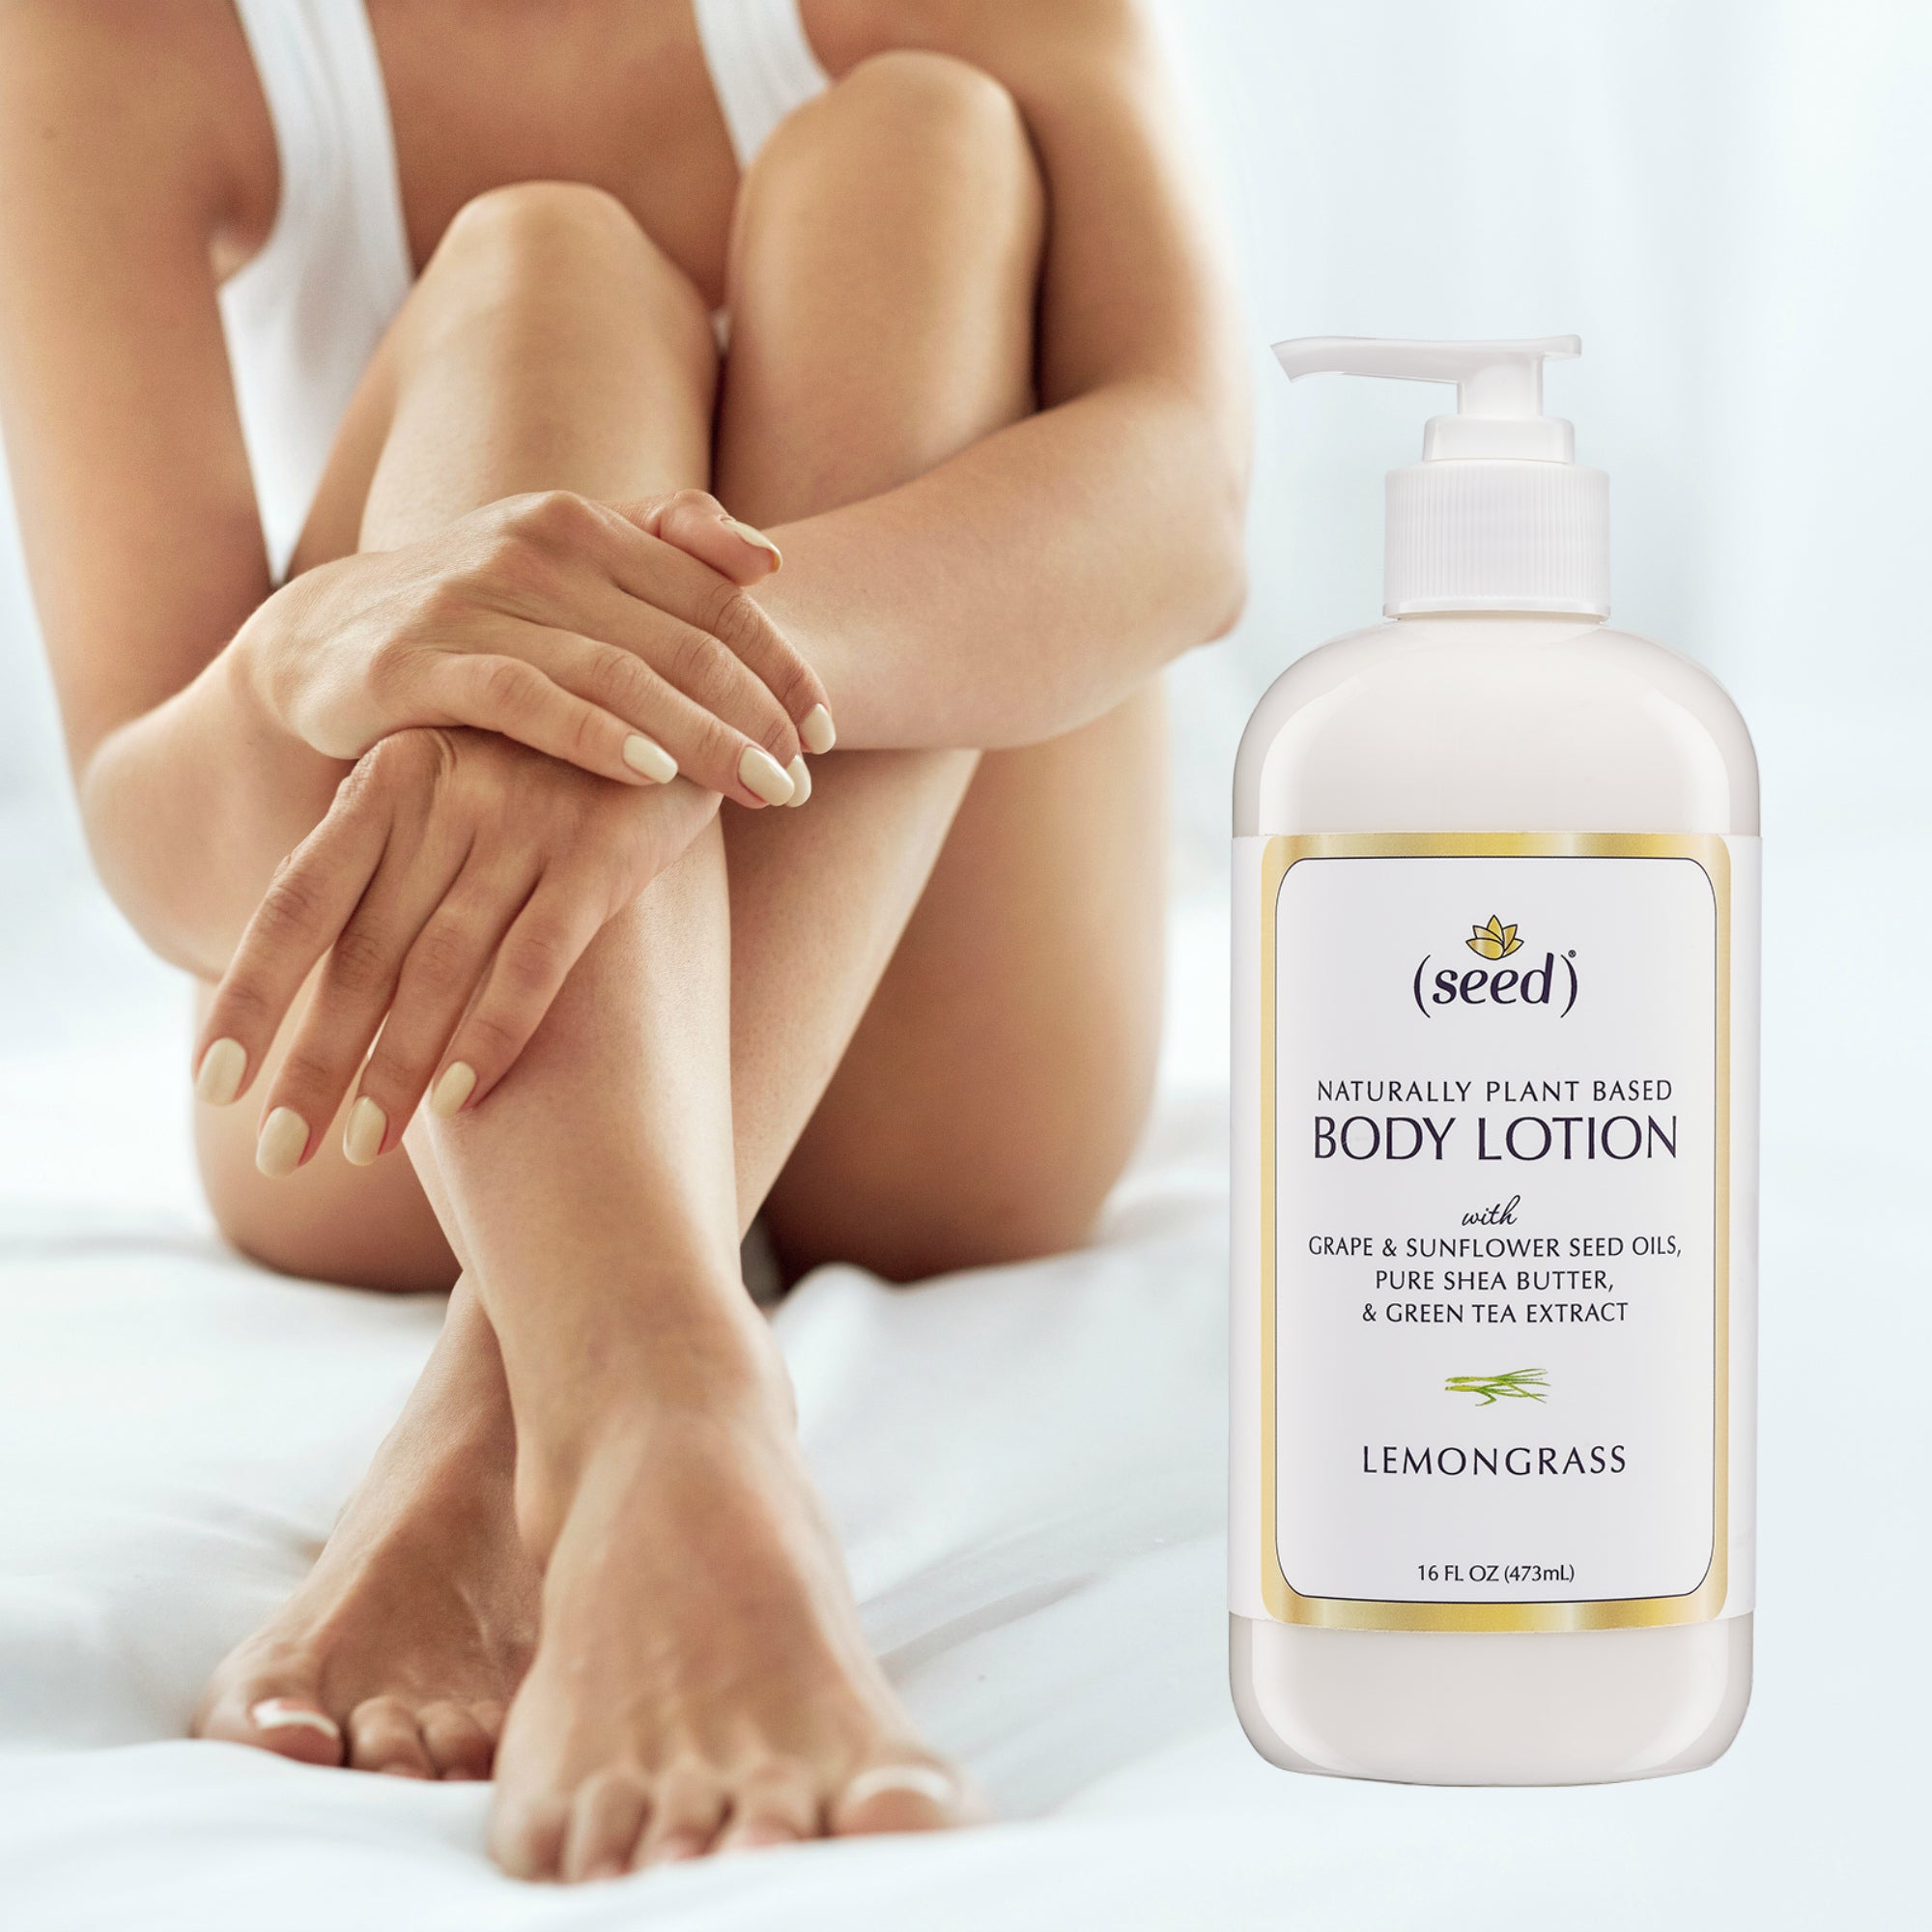 Seed Body Lotion soothes and softens skins all over